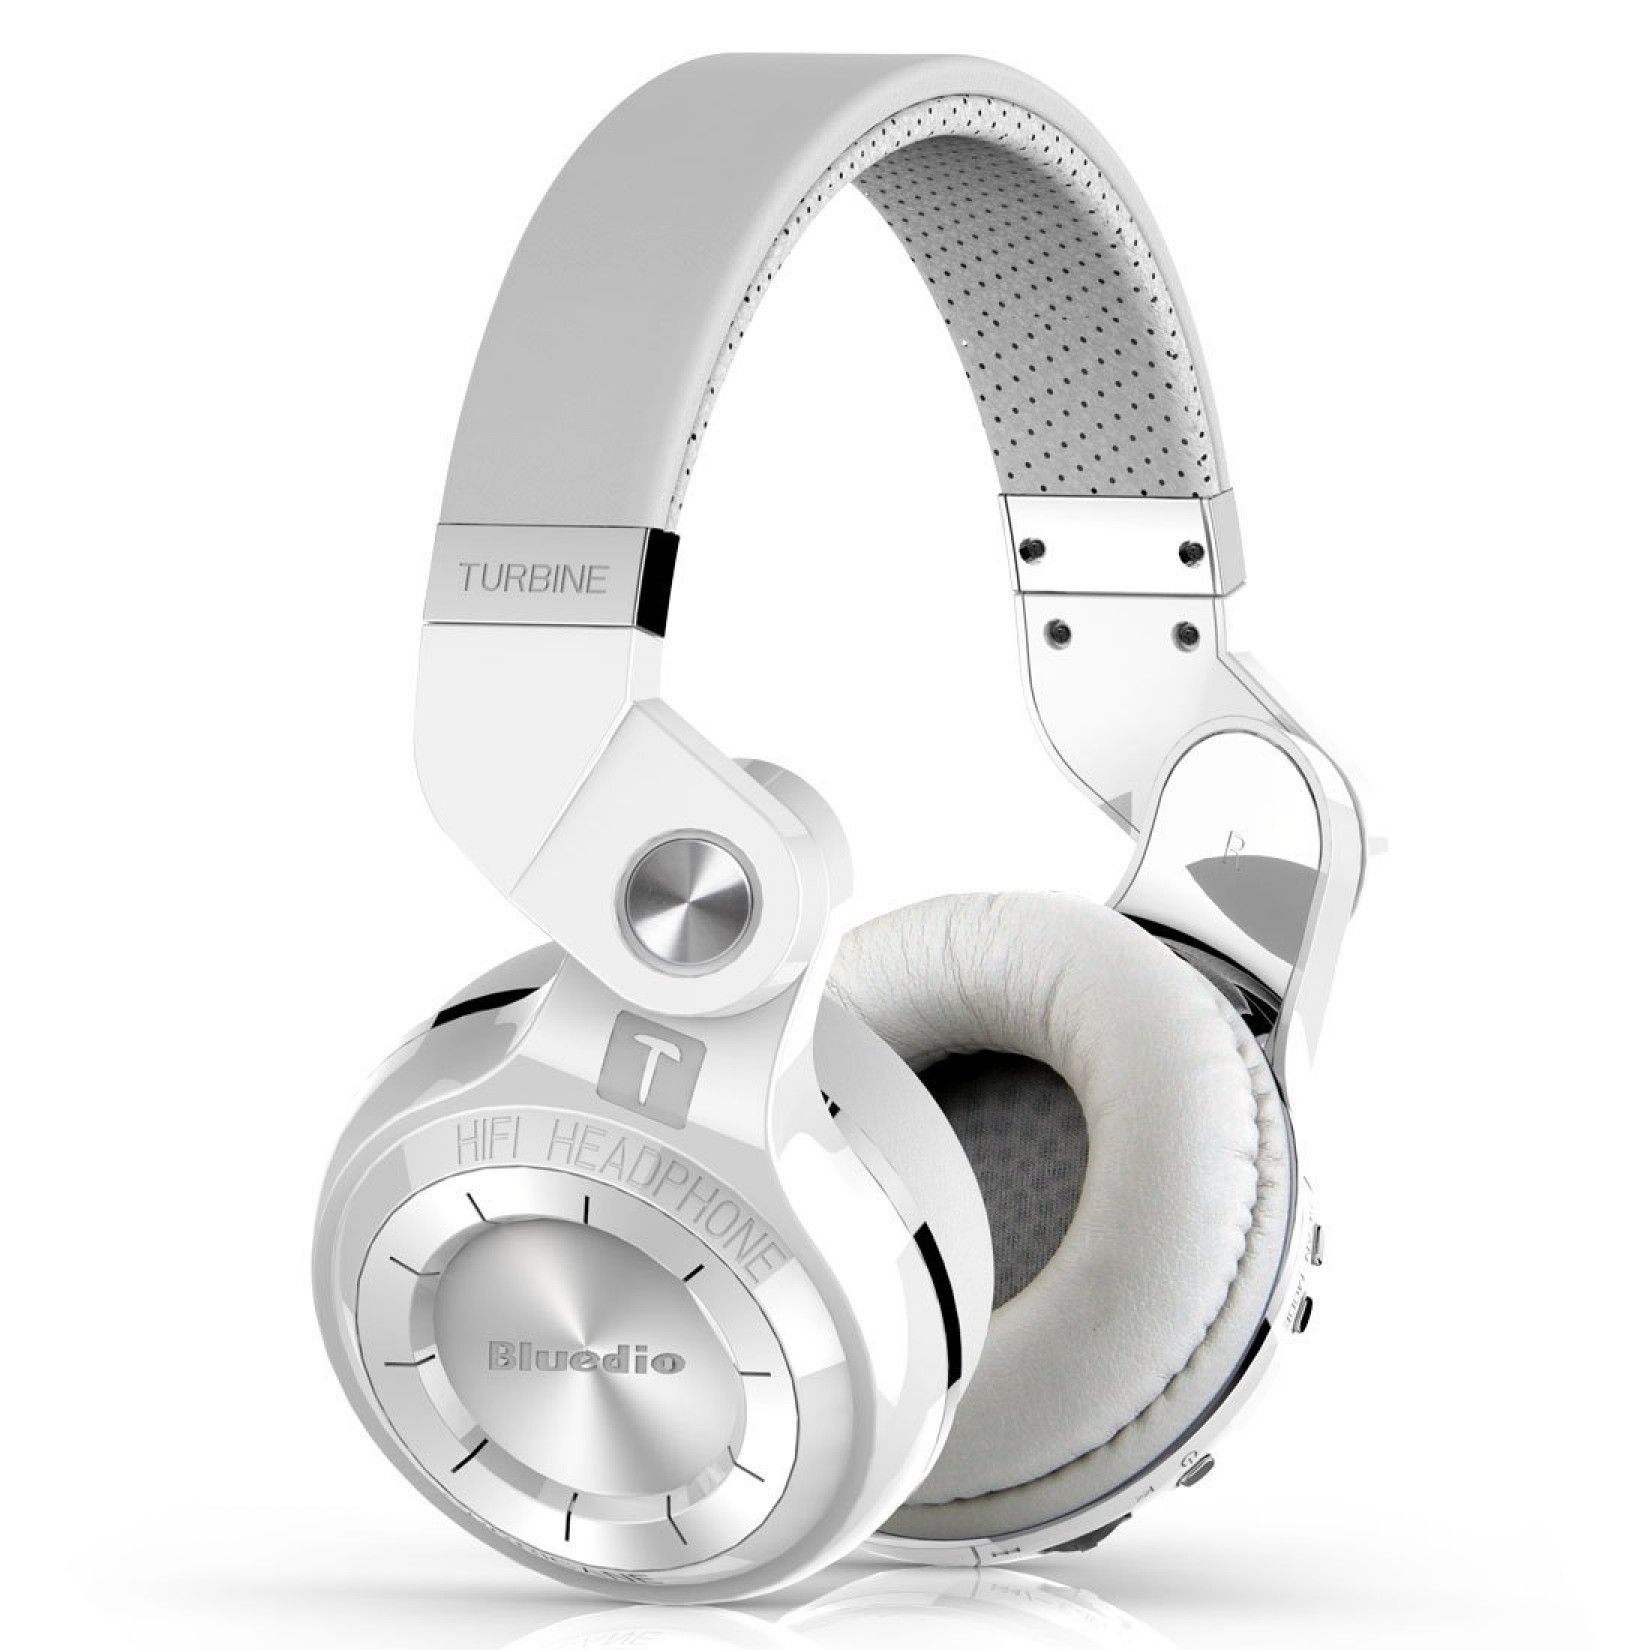 Bluetooth Wireless Headset Over Ear: Over The Ear Gaming Earphones Stereo Bluetooth Headphones Wireless Headset